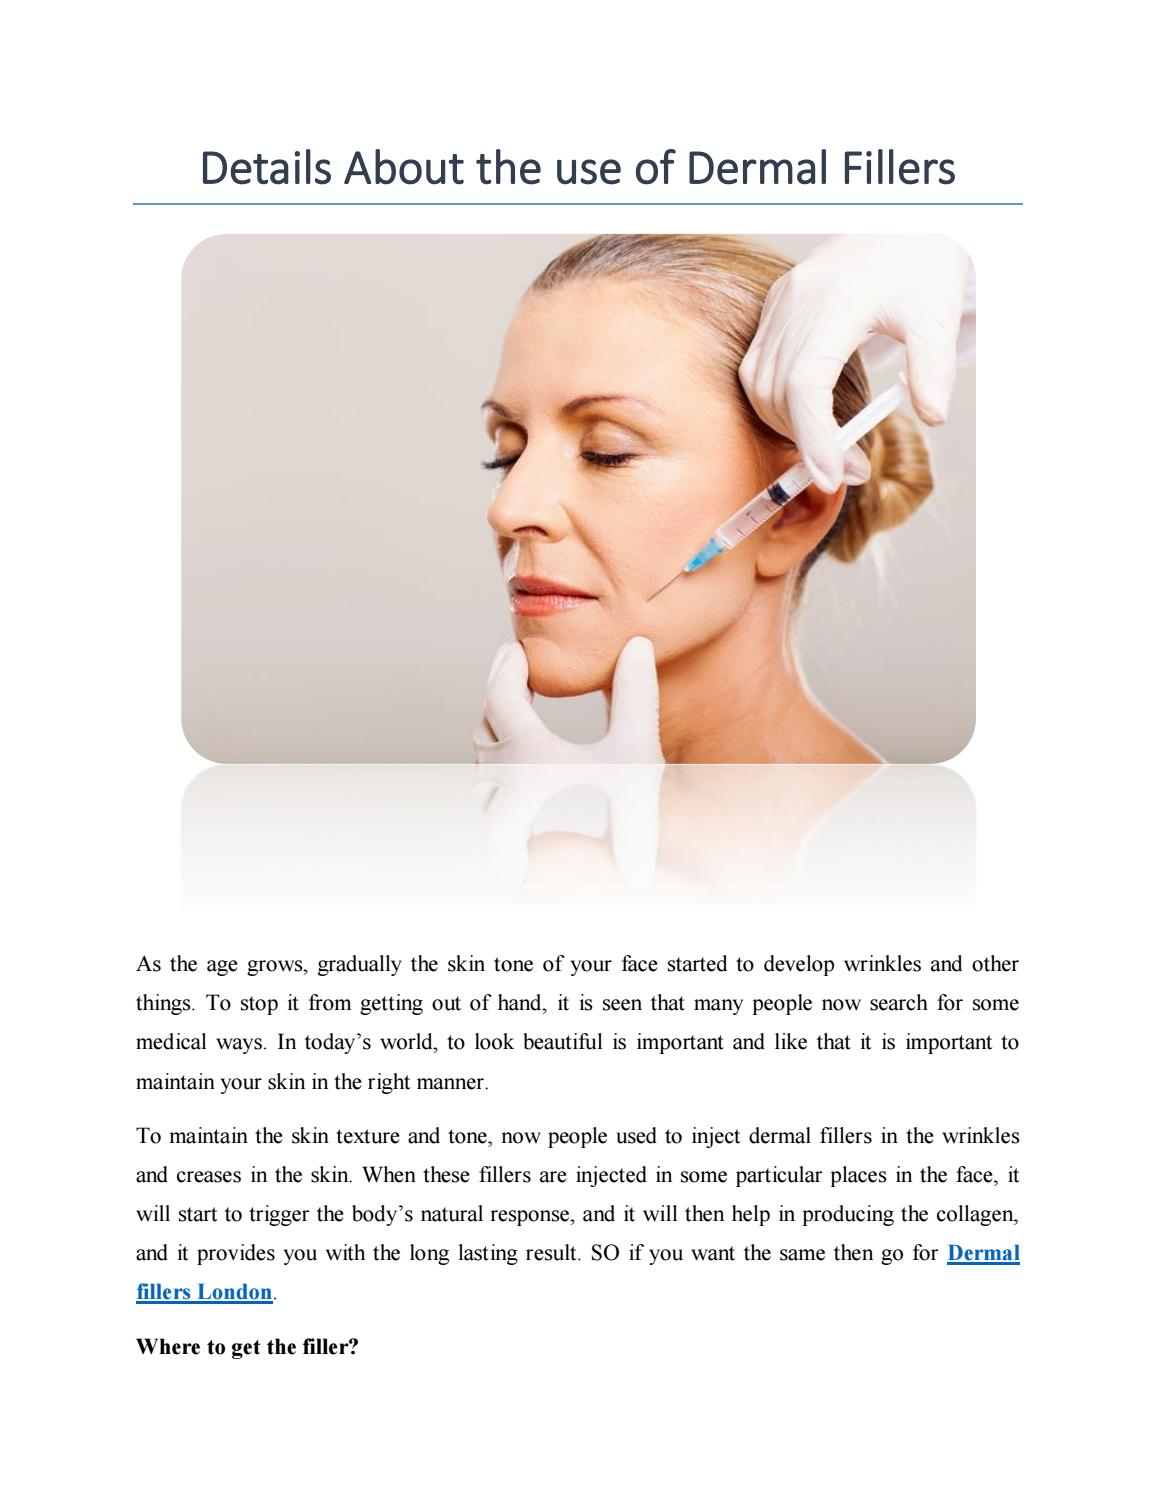 Know How to Use Dermal Fillers by sculptfillers - issuu